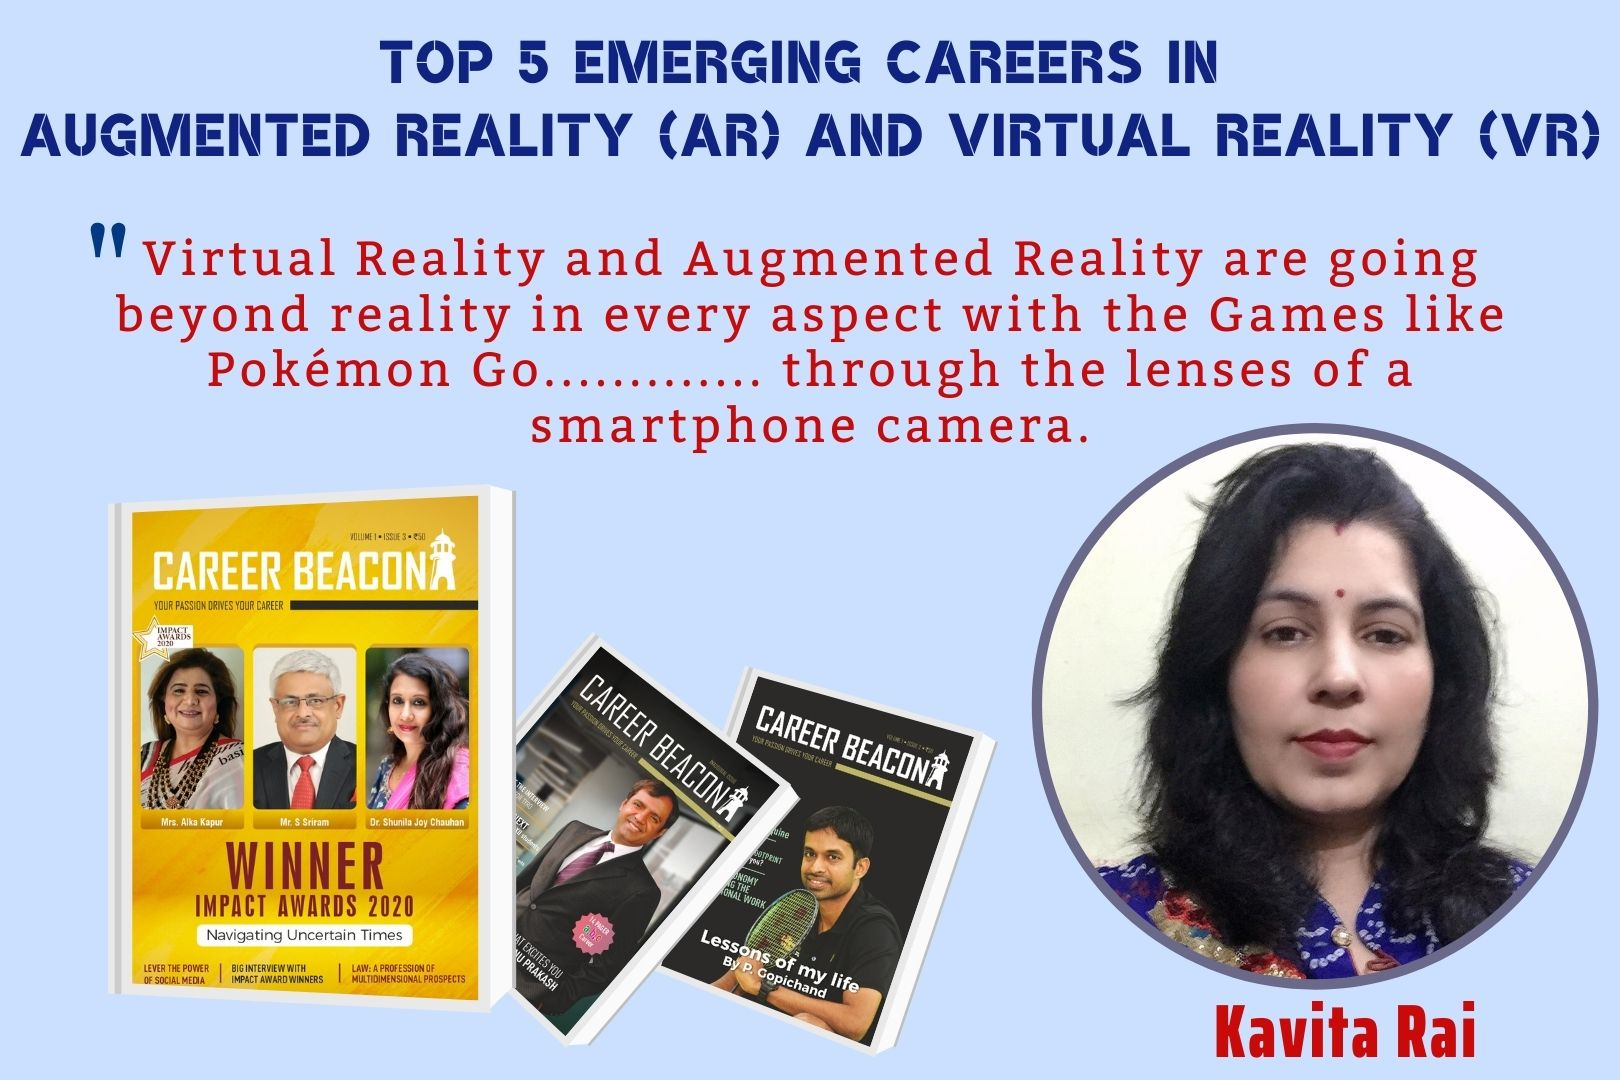 Top 5 emerging careers in Augmented Reality (AR) and Virtual Reality (VR)